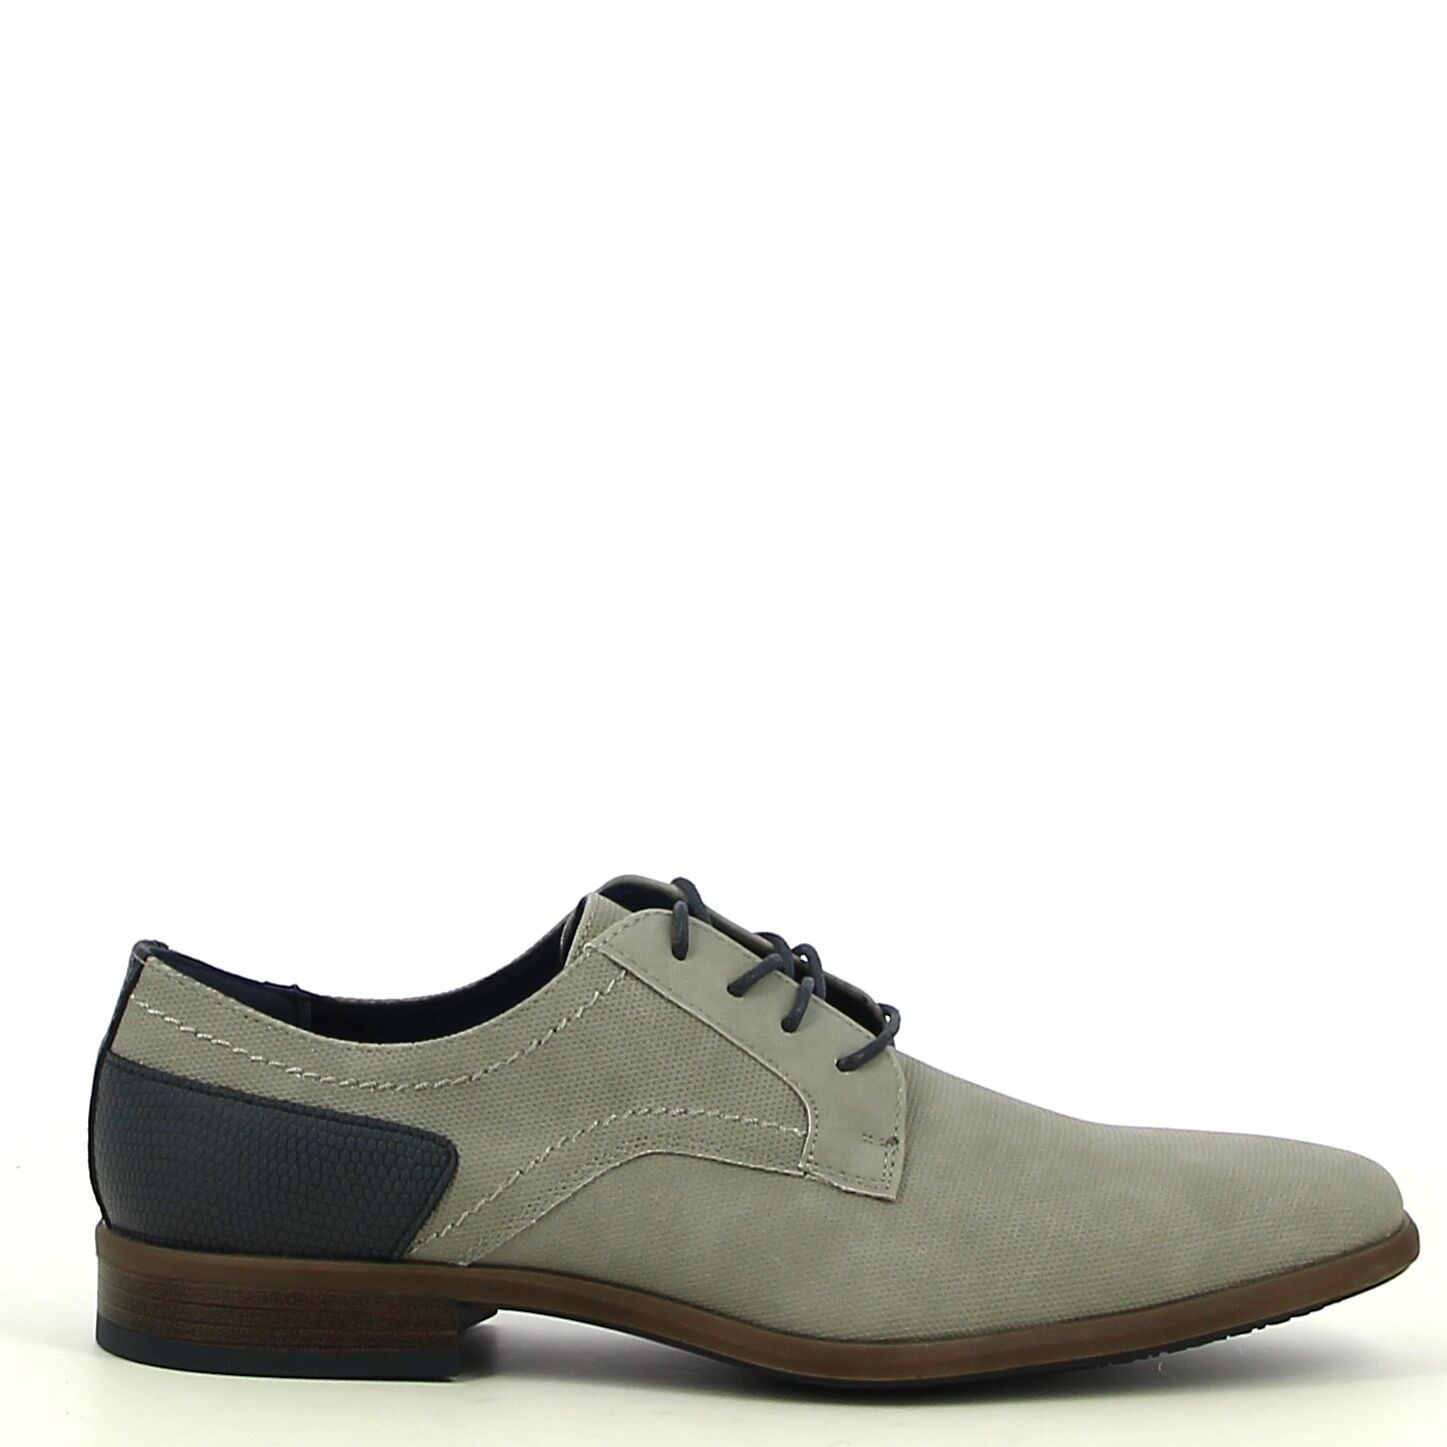 Ken Shoe Fashion - Grijs - Veterschoenen